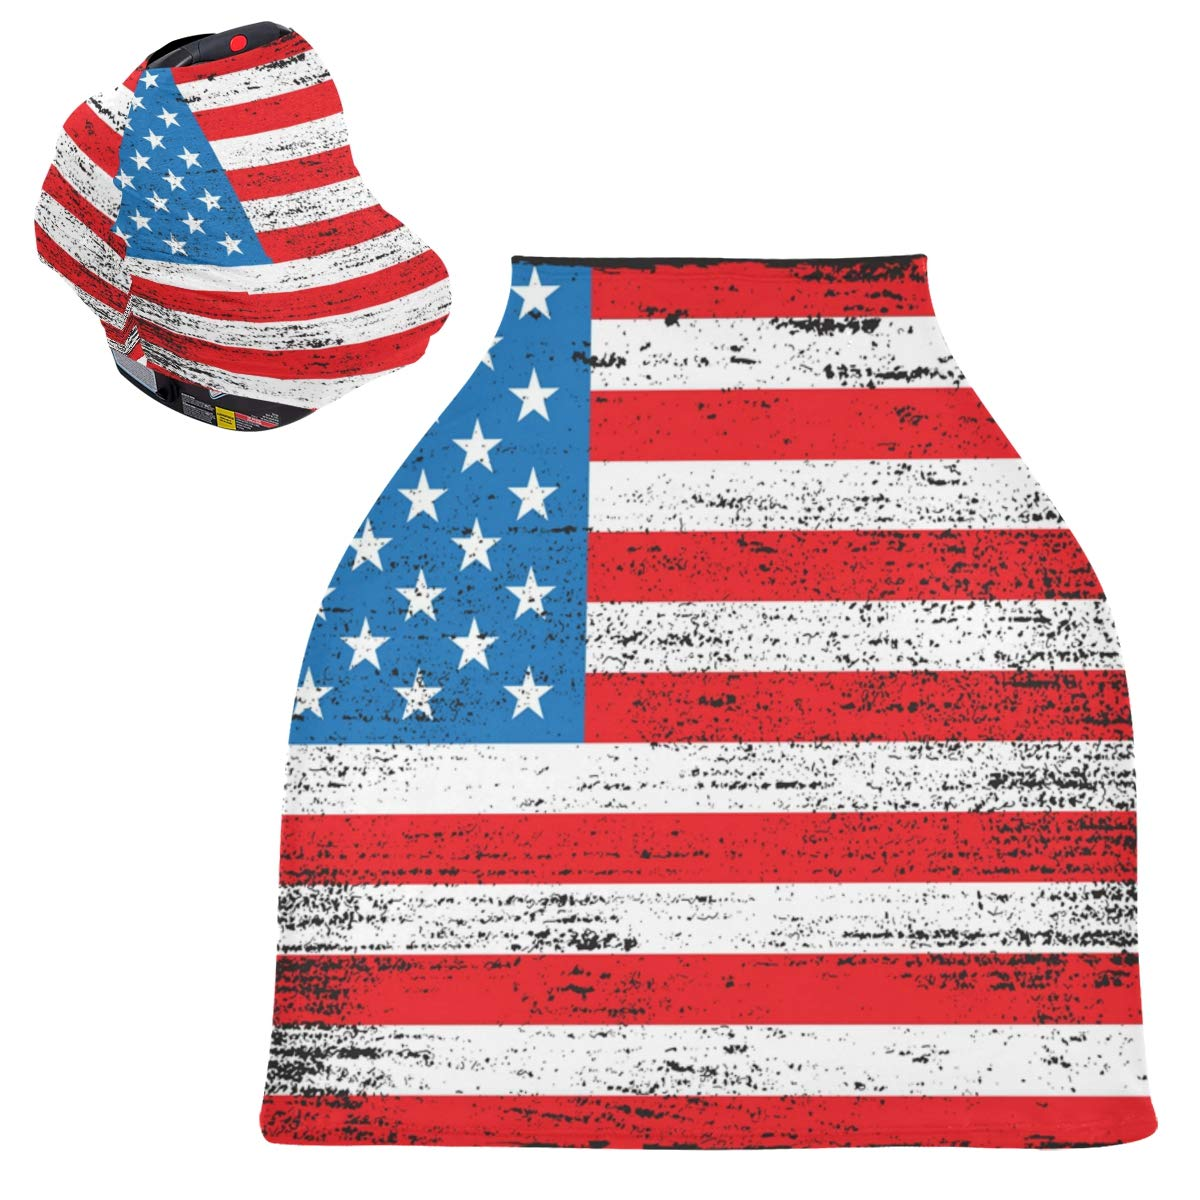 Stretchy Baby Car Seat Canopy - Old American Flag Vintage Dirty Infant Stroller Cover Multi Use Carseat Scarf Nursing Cover for Boy